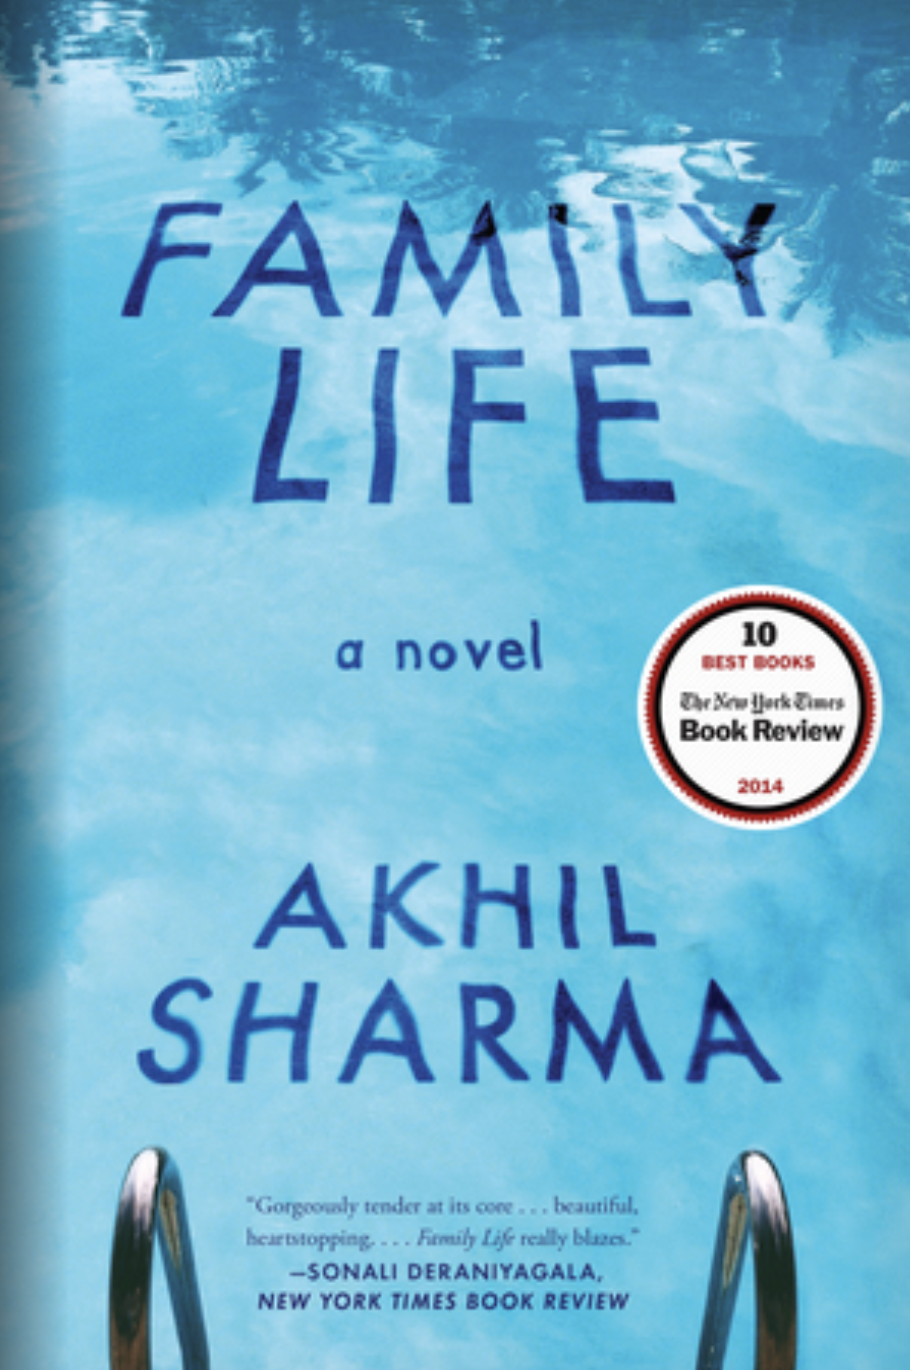 The cover features the book's title reflected in a pool